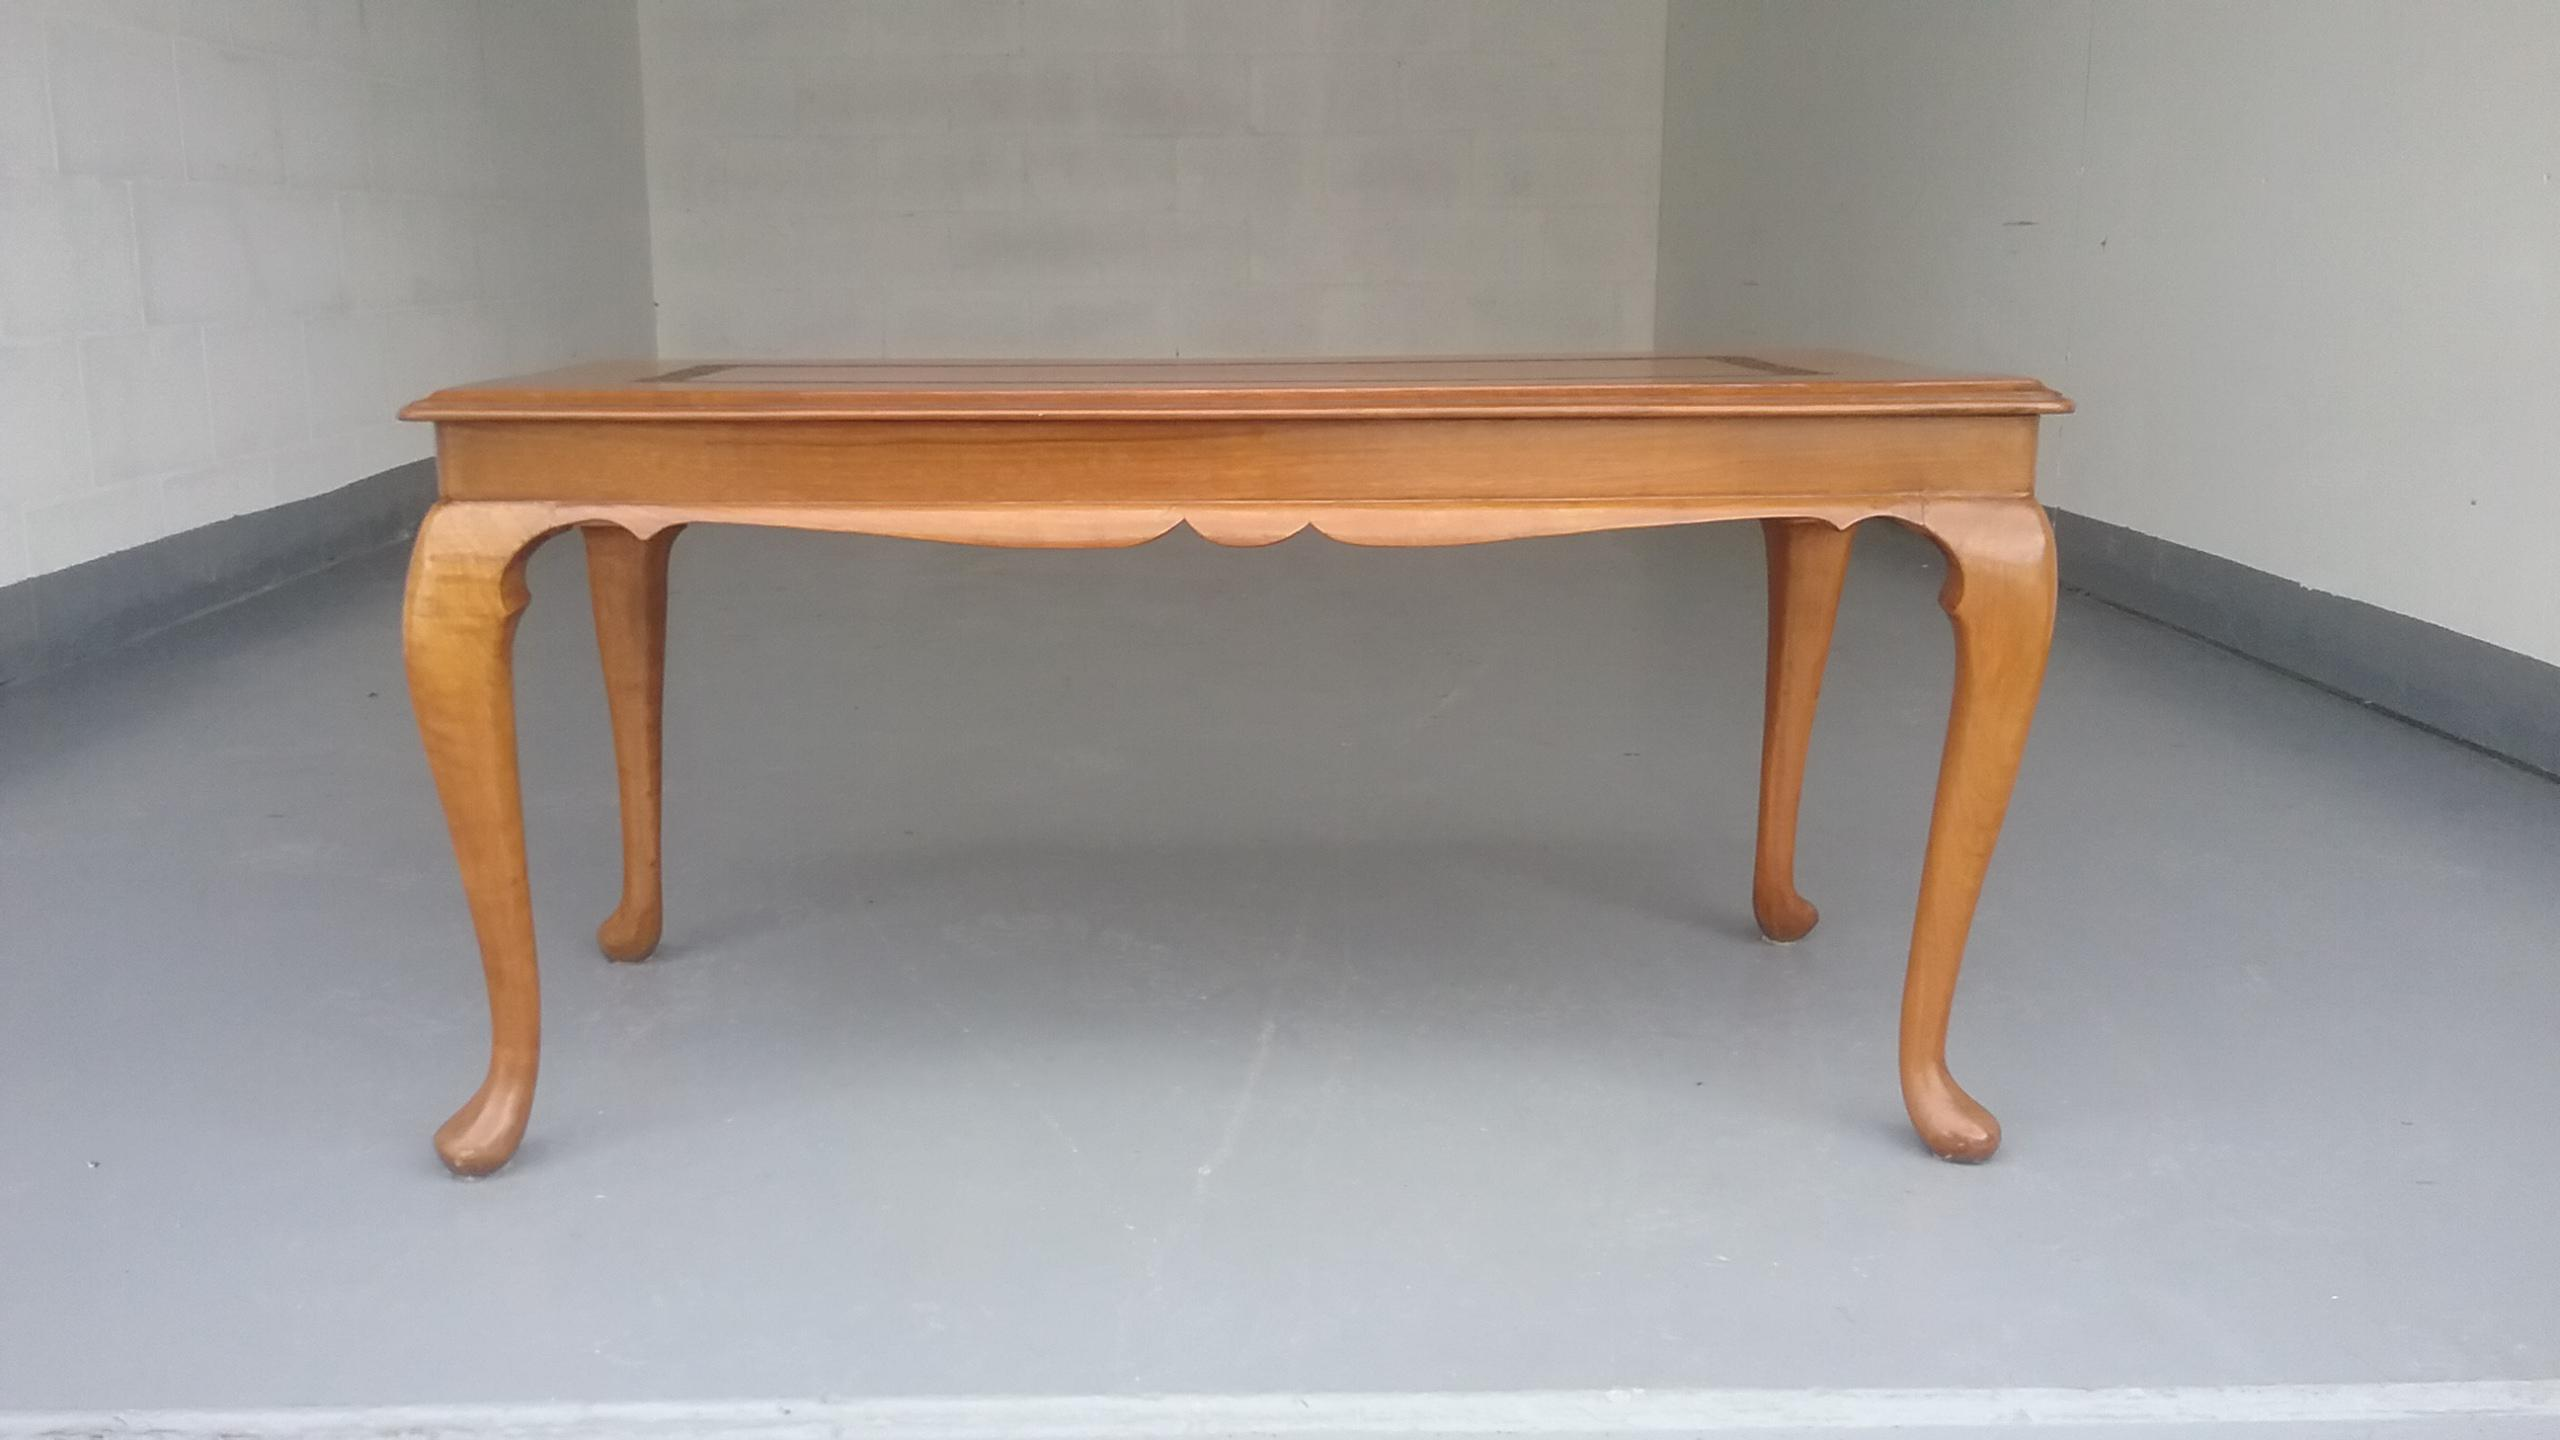 Vintage French Provincial Coffee Table With Handcrafted Designs